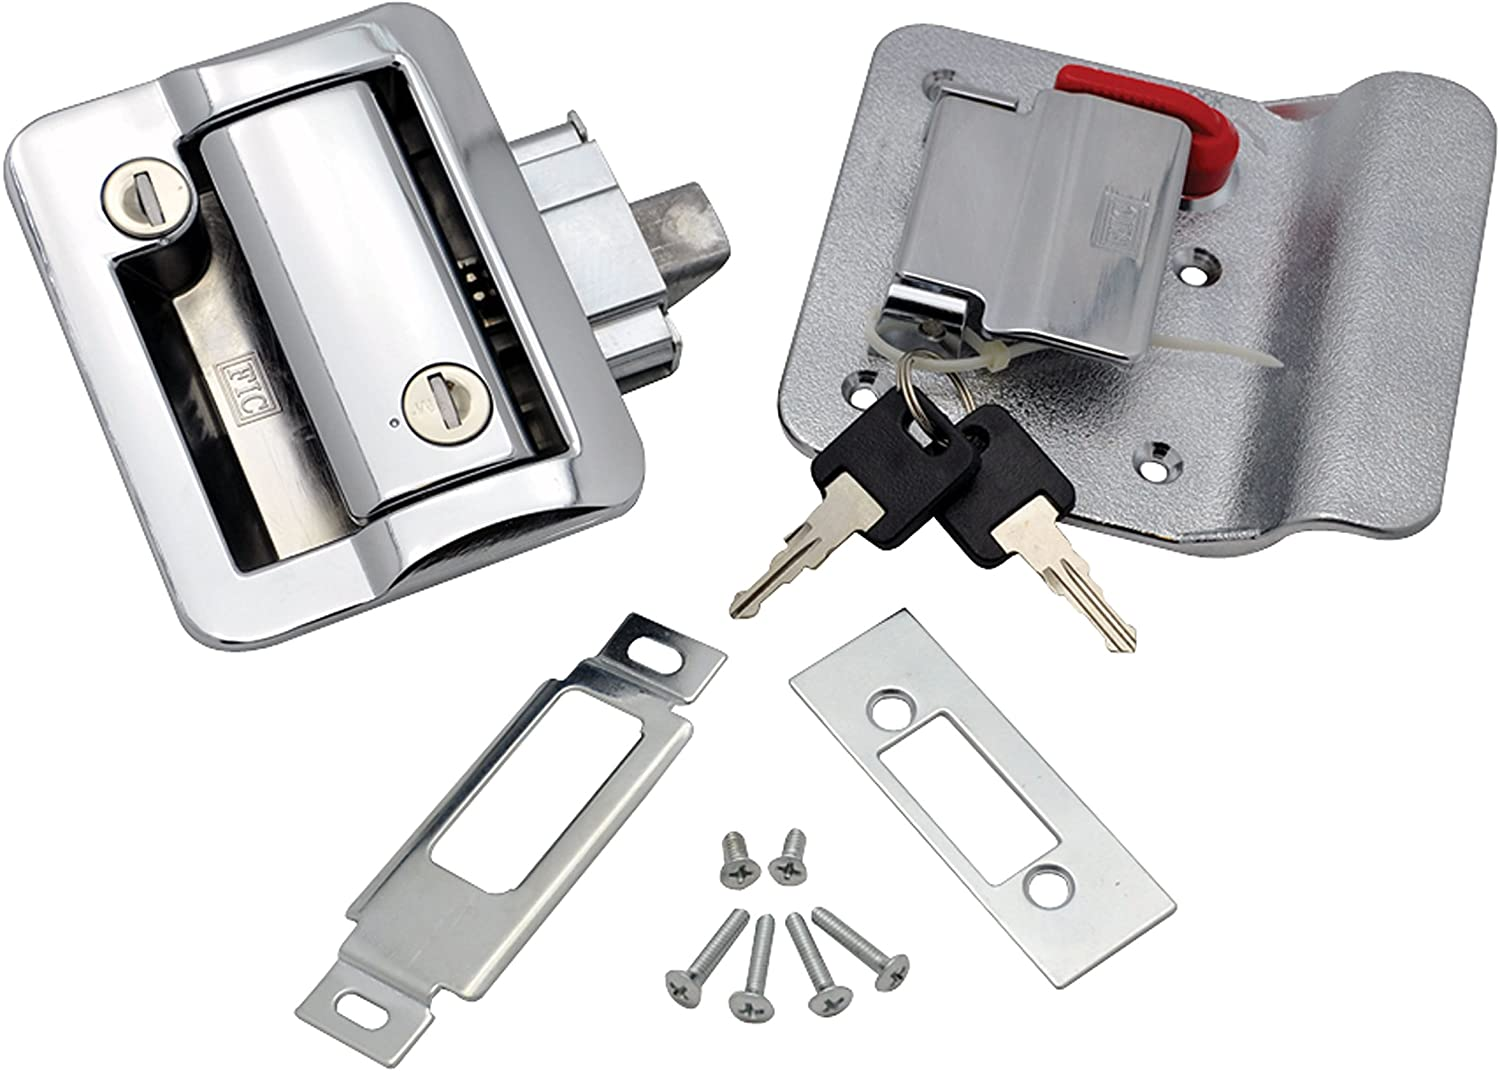 Fastec 1007.1076 Industrial 43610-09 FIC Travel Trailer Lock with Deadbolt-White